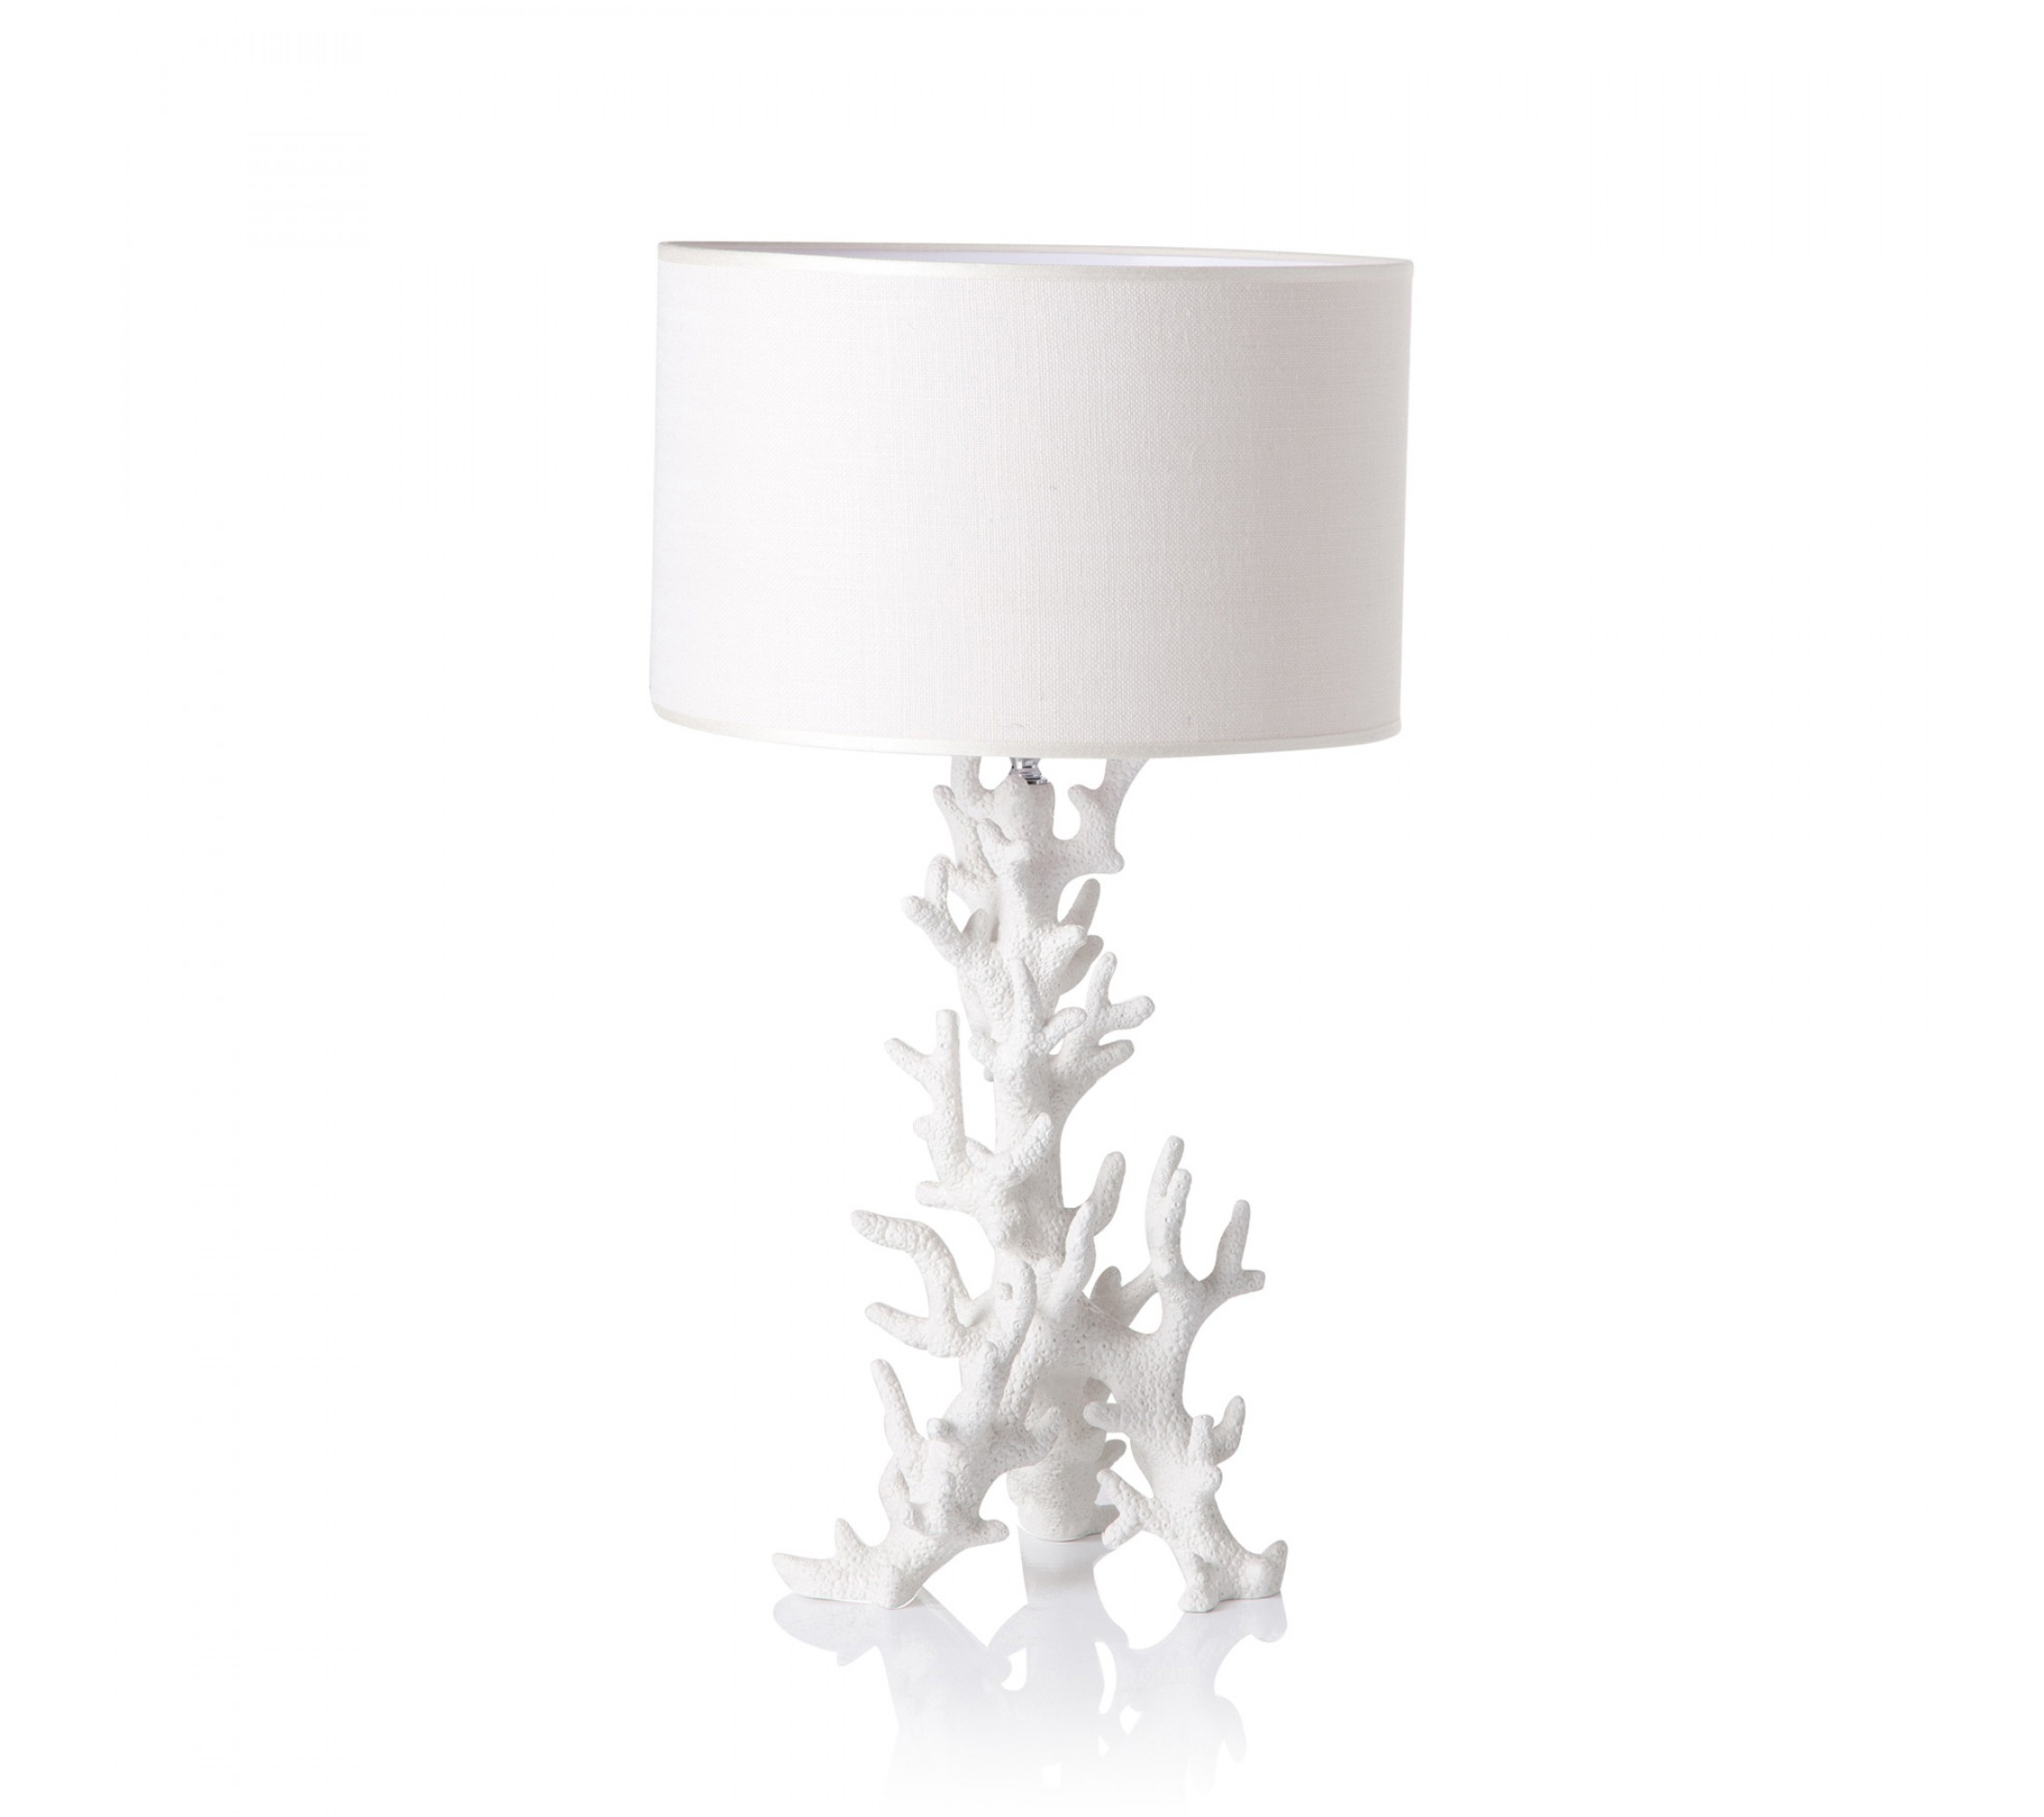 Lampe Koralle - Coral Lamp